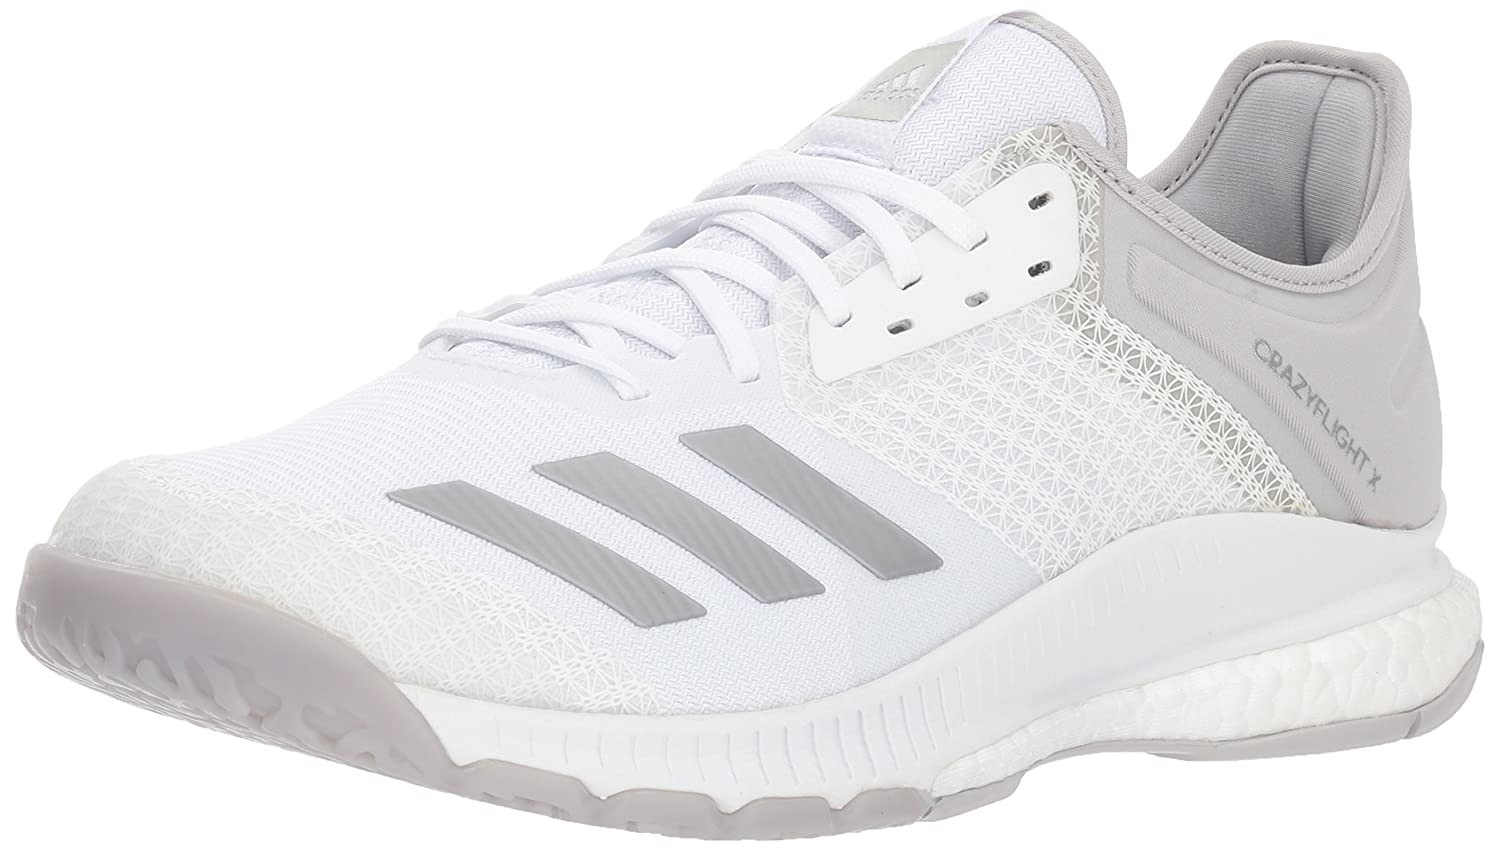 adidas Women's Crazyflight X 2 Volleyball Shoe B077X4PR38 13 B(M) US|White/Silver Metallic/Grey